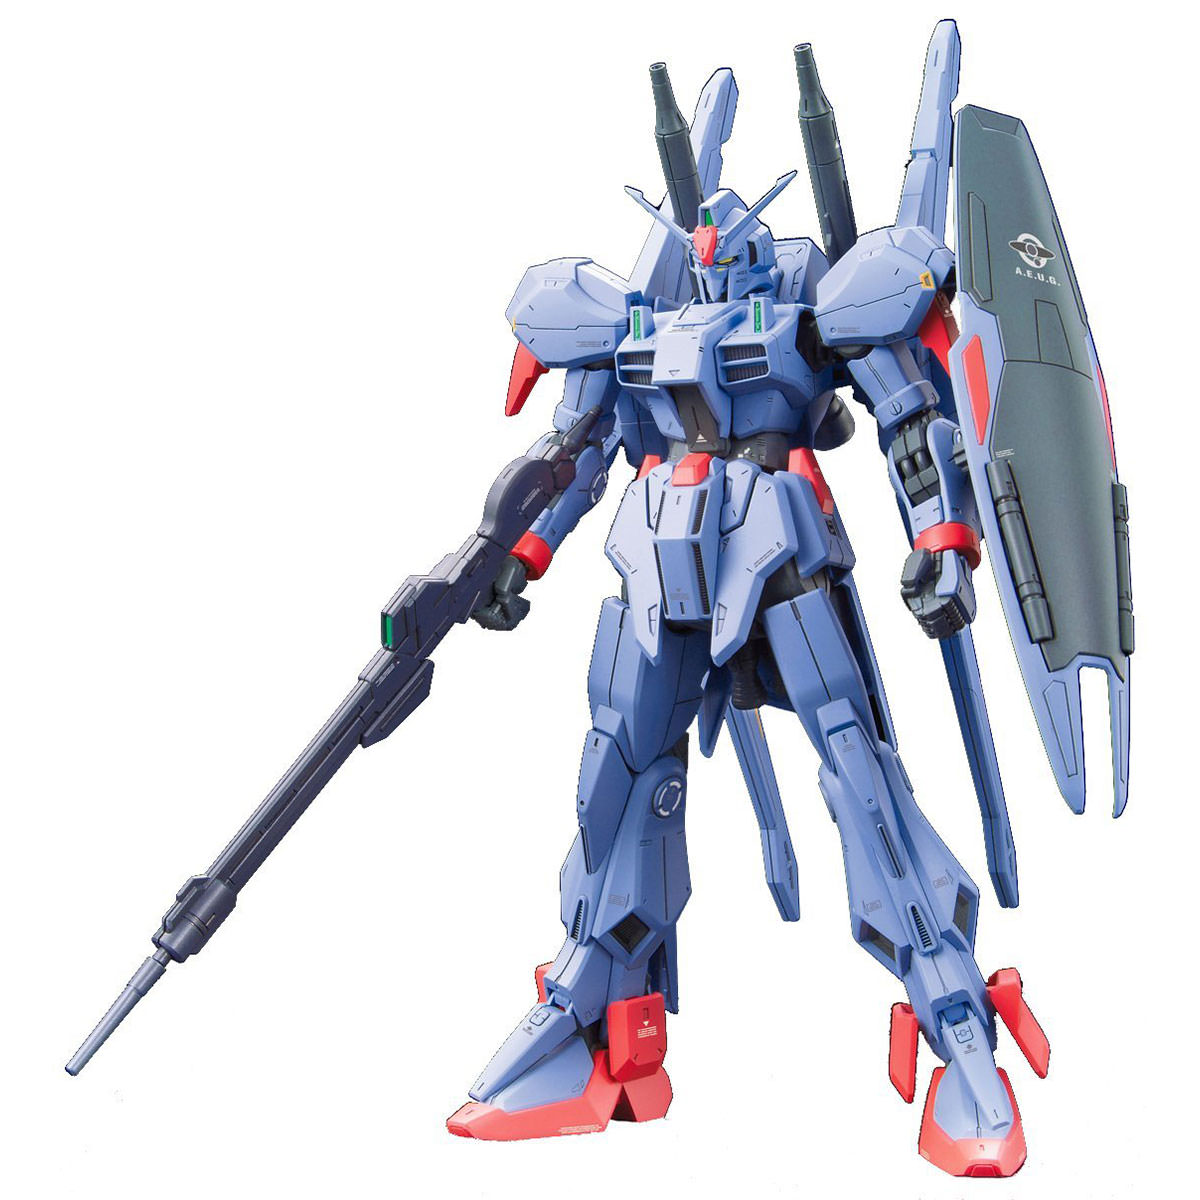 Bandai 1 100 Re 100 Gundam Mk Iii At Hobby Warehouse